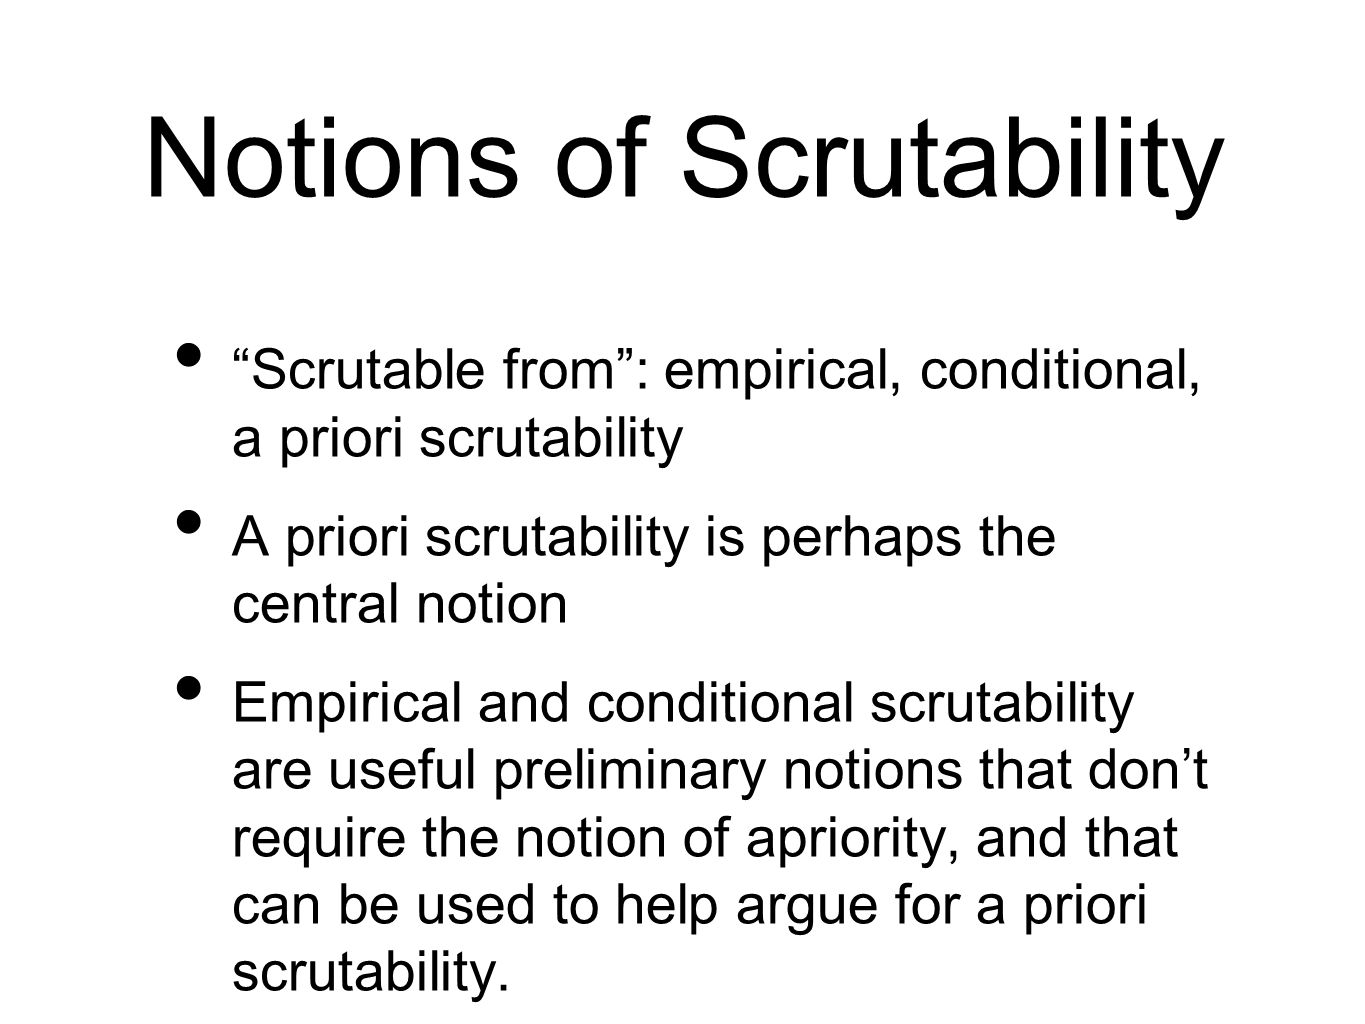 Notions of Scrutability Scrutable from: empirical, conditional, a priori scrutability A priori scrutability is perhaps the central notion Empirical and conditional scrutability are useful preliminary notions that dont require the notion of apriority, and that can be used to help argue for a priori scrutability.